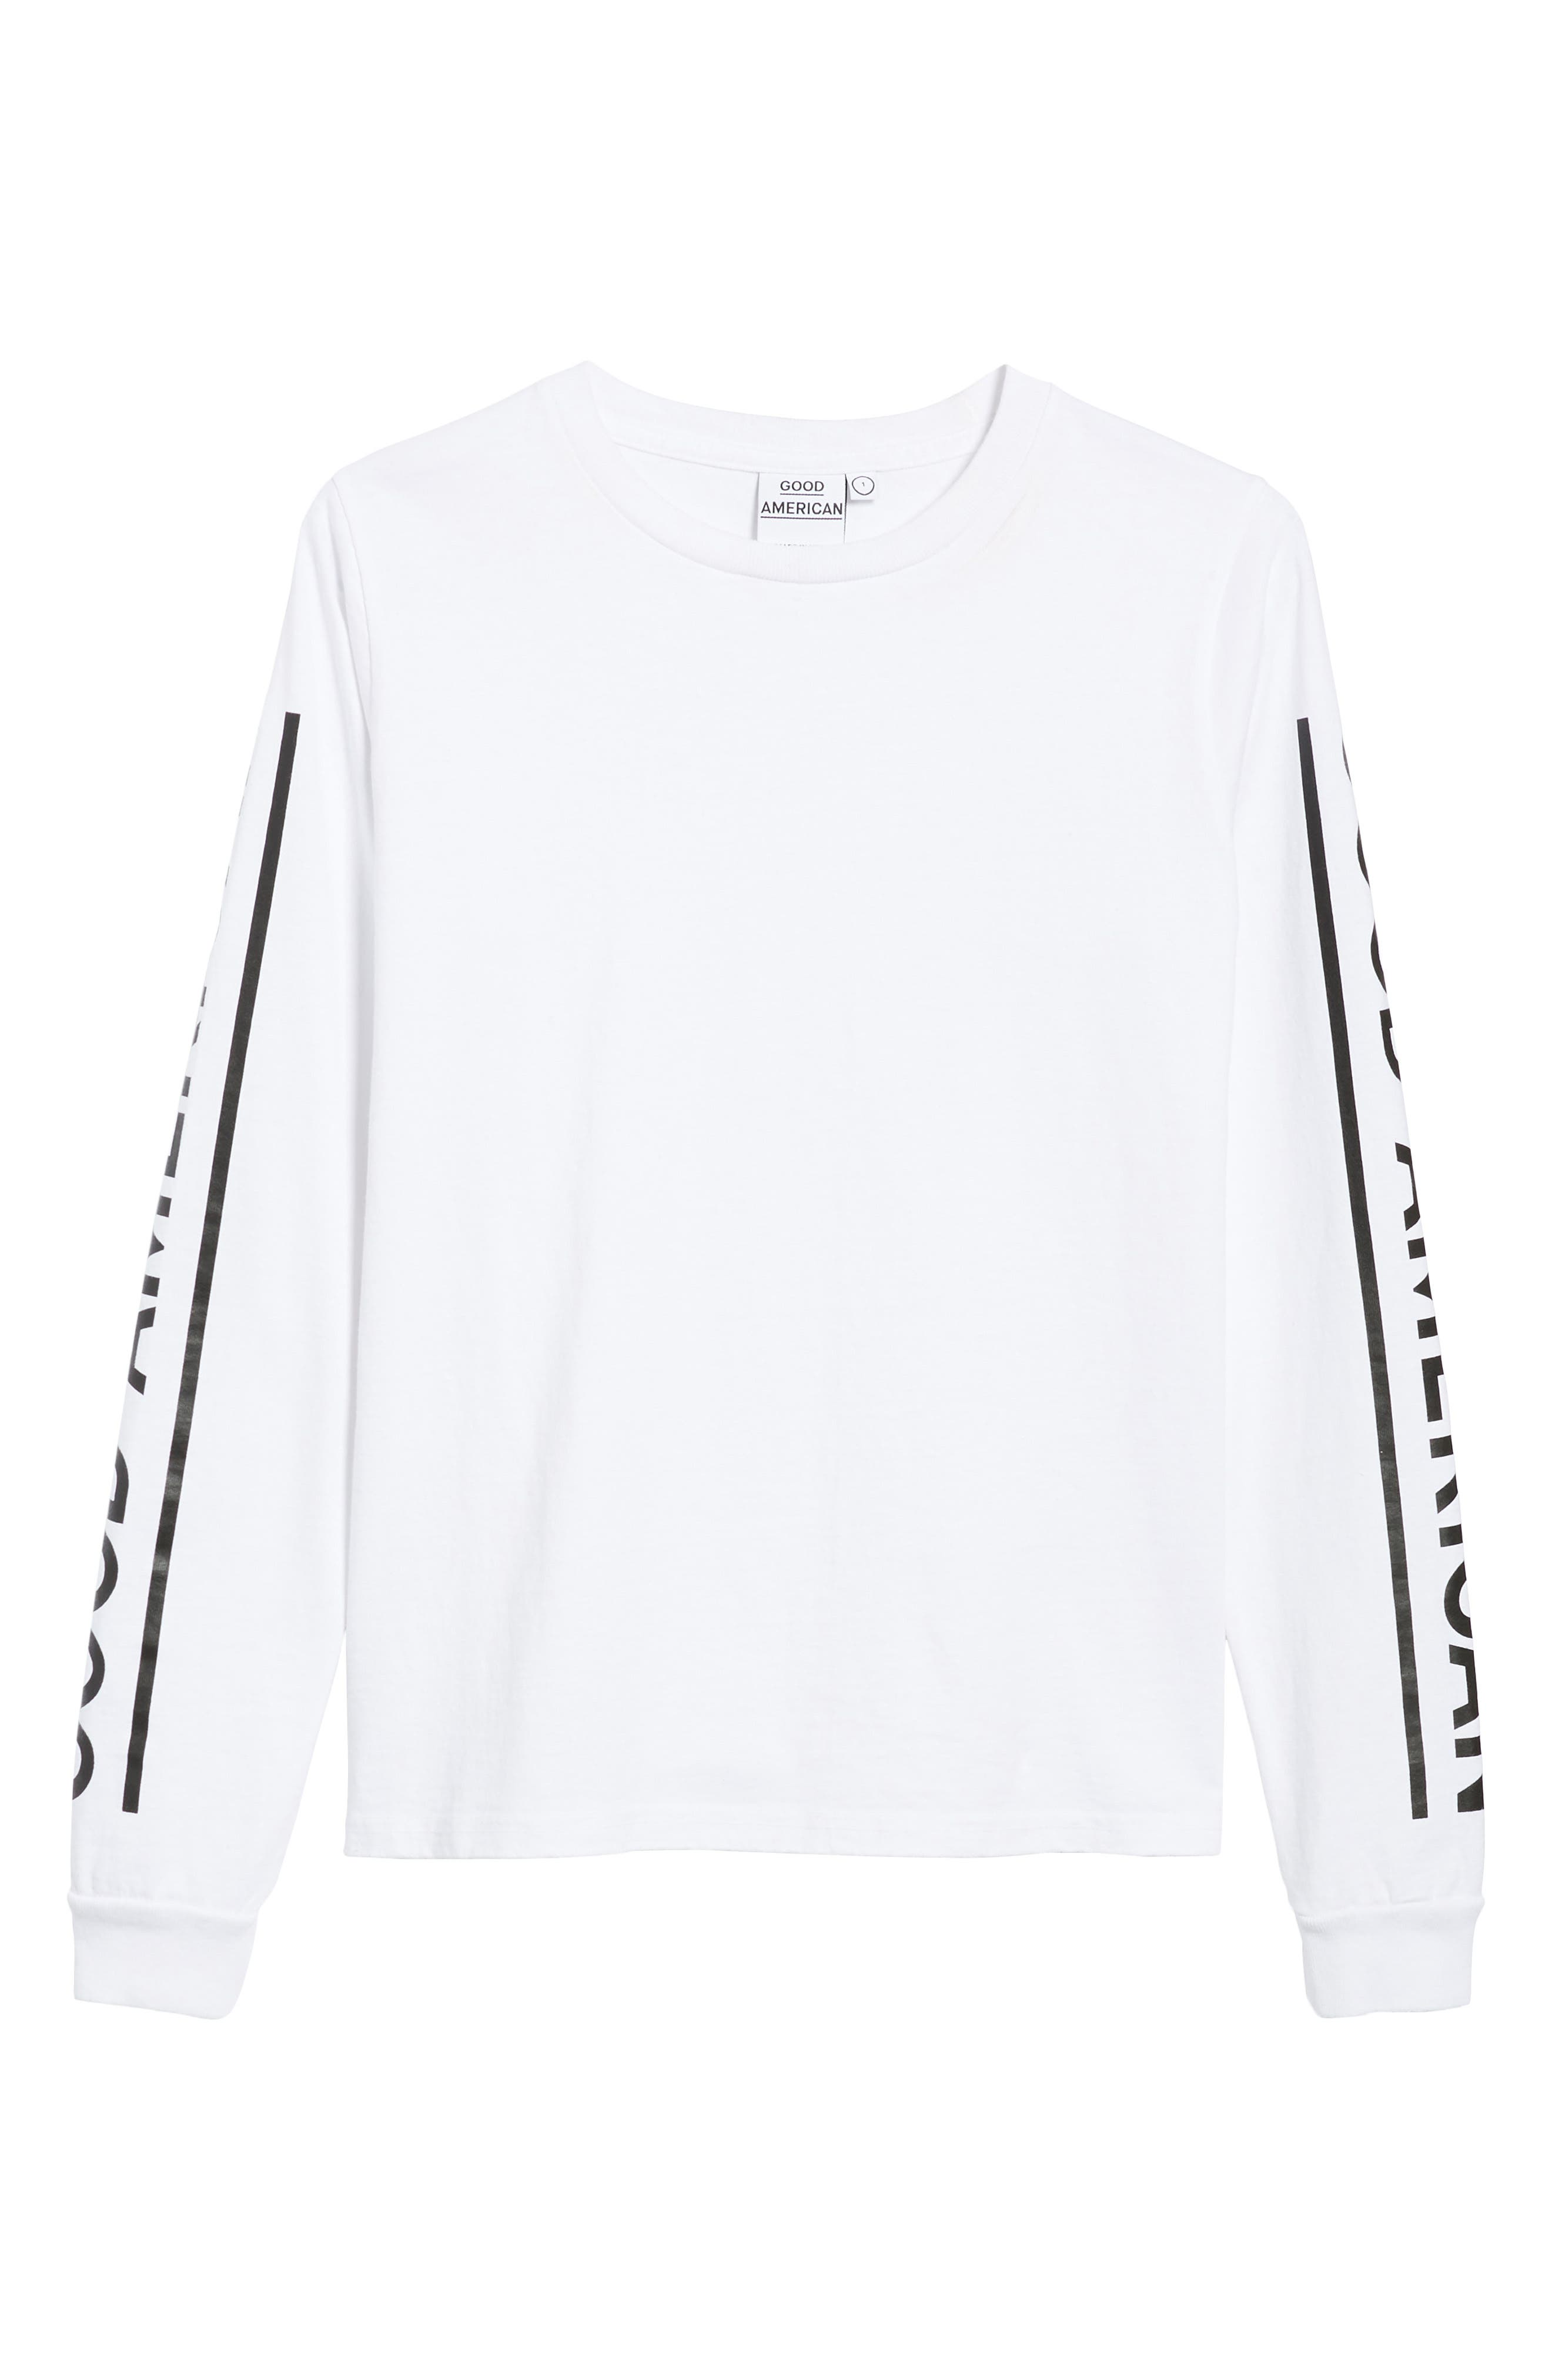 Goodies Long Sleeve Graphic Tee,                             Alternate thumbnail 6, color,                             120